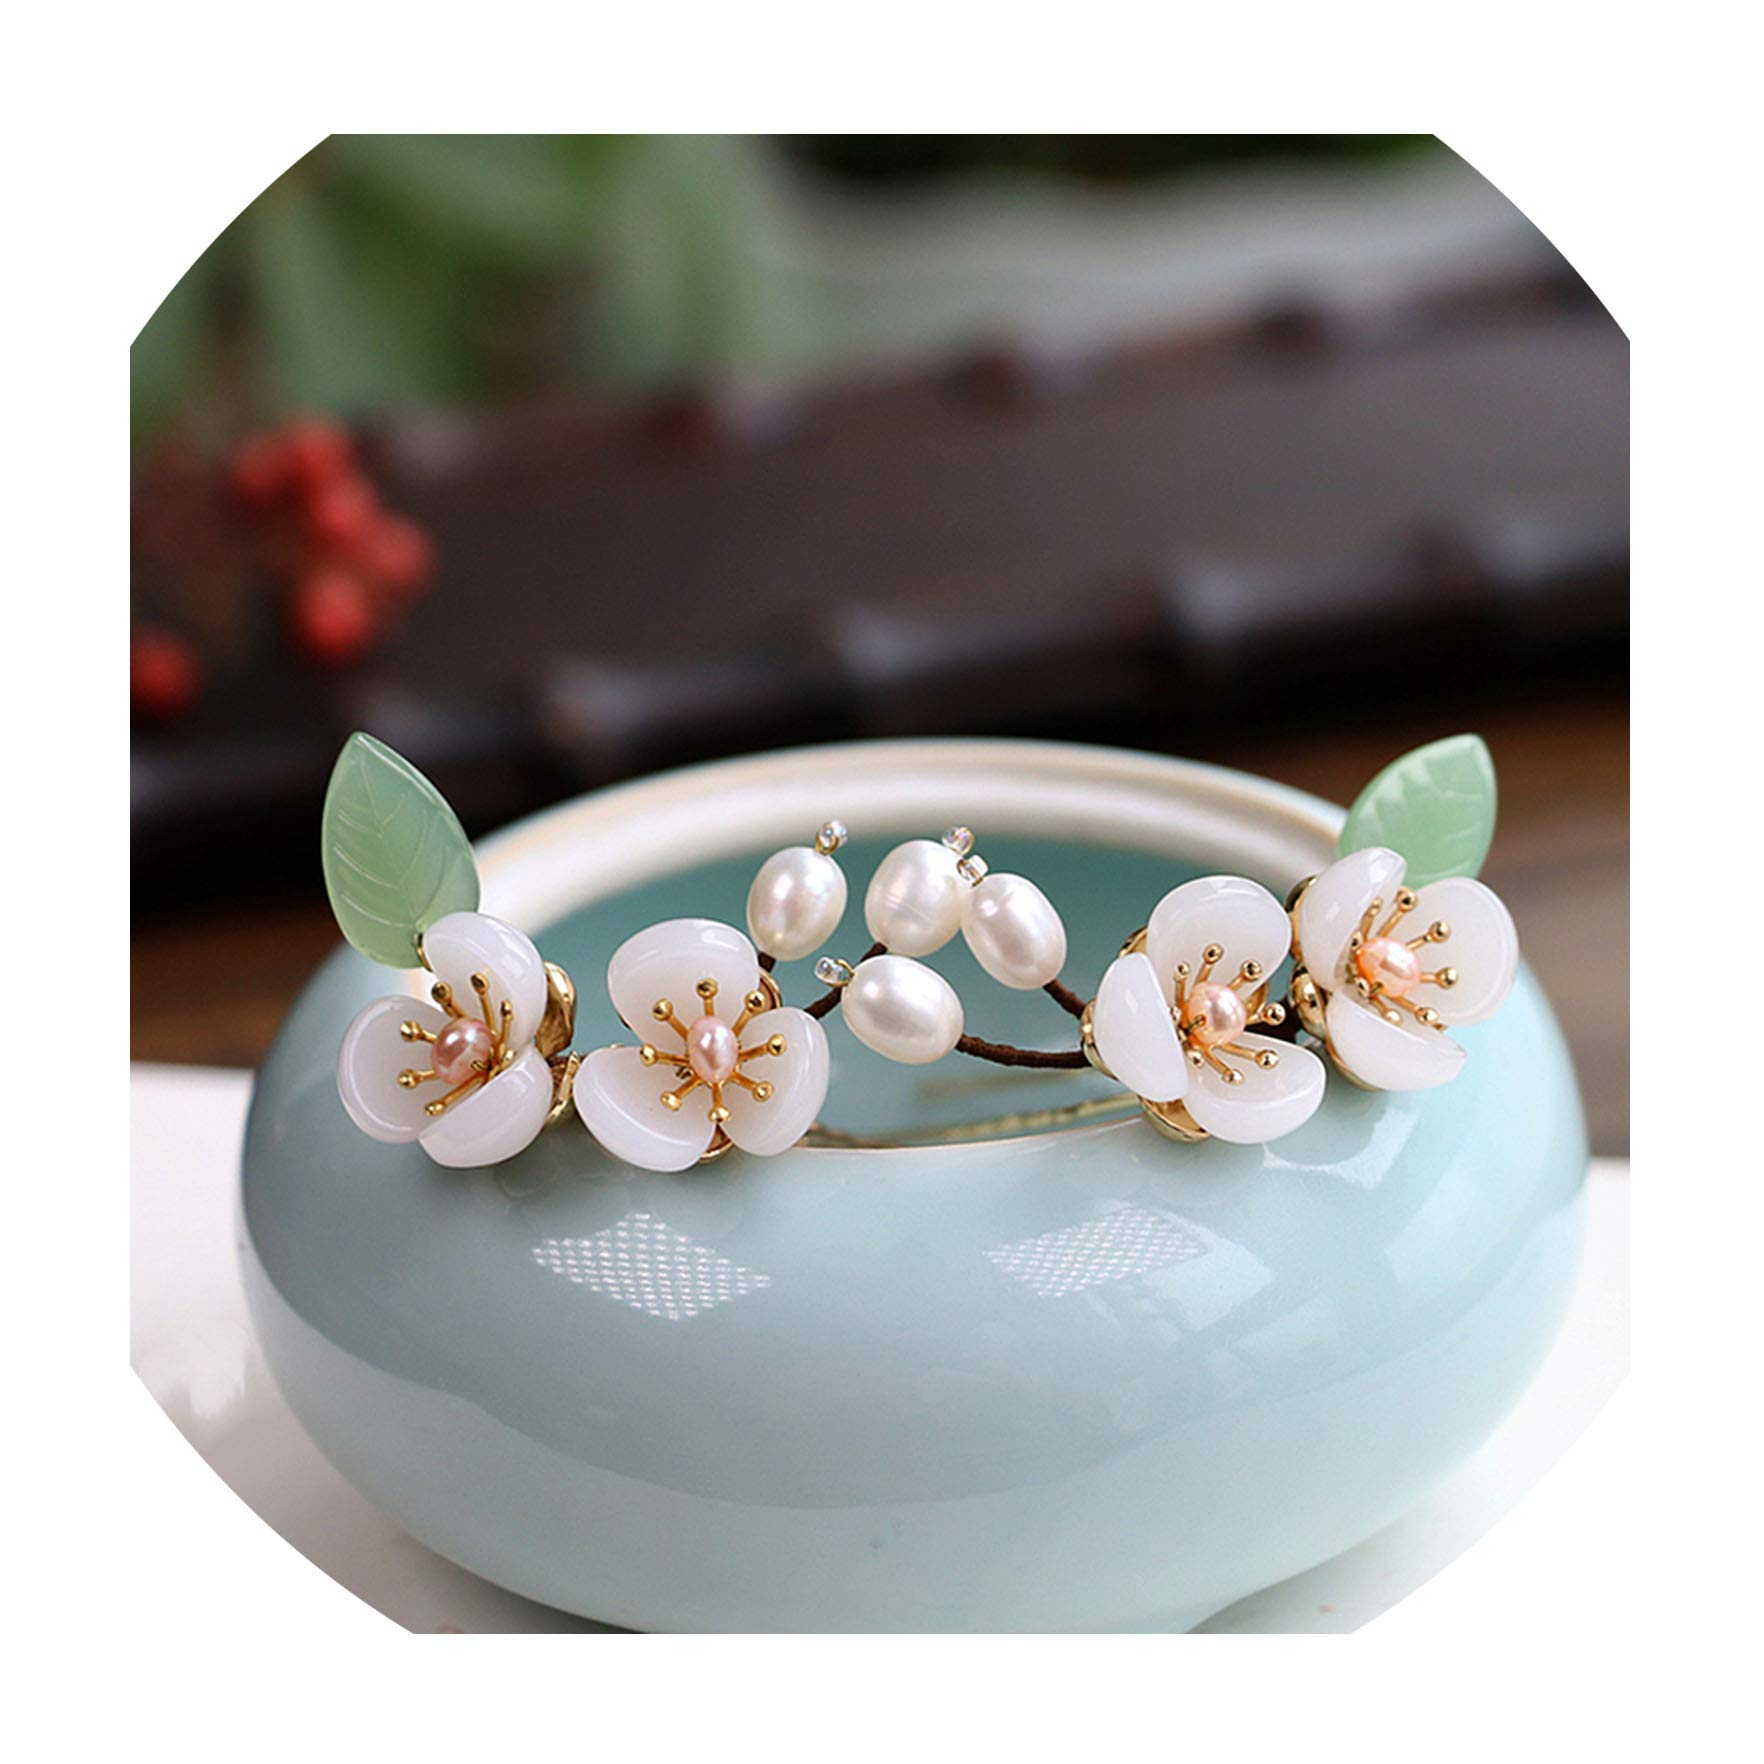 2pc Pearl Copper Blossom Hair Pin Chinese Hair Pins Retro Hairpin Bridal Jewelry Wedding Hair Accessories Pince,WIGO1359 2PC by MAY HAPPY